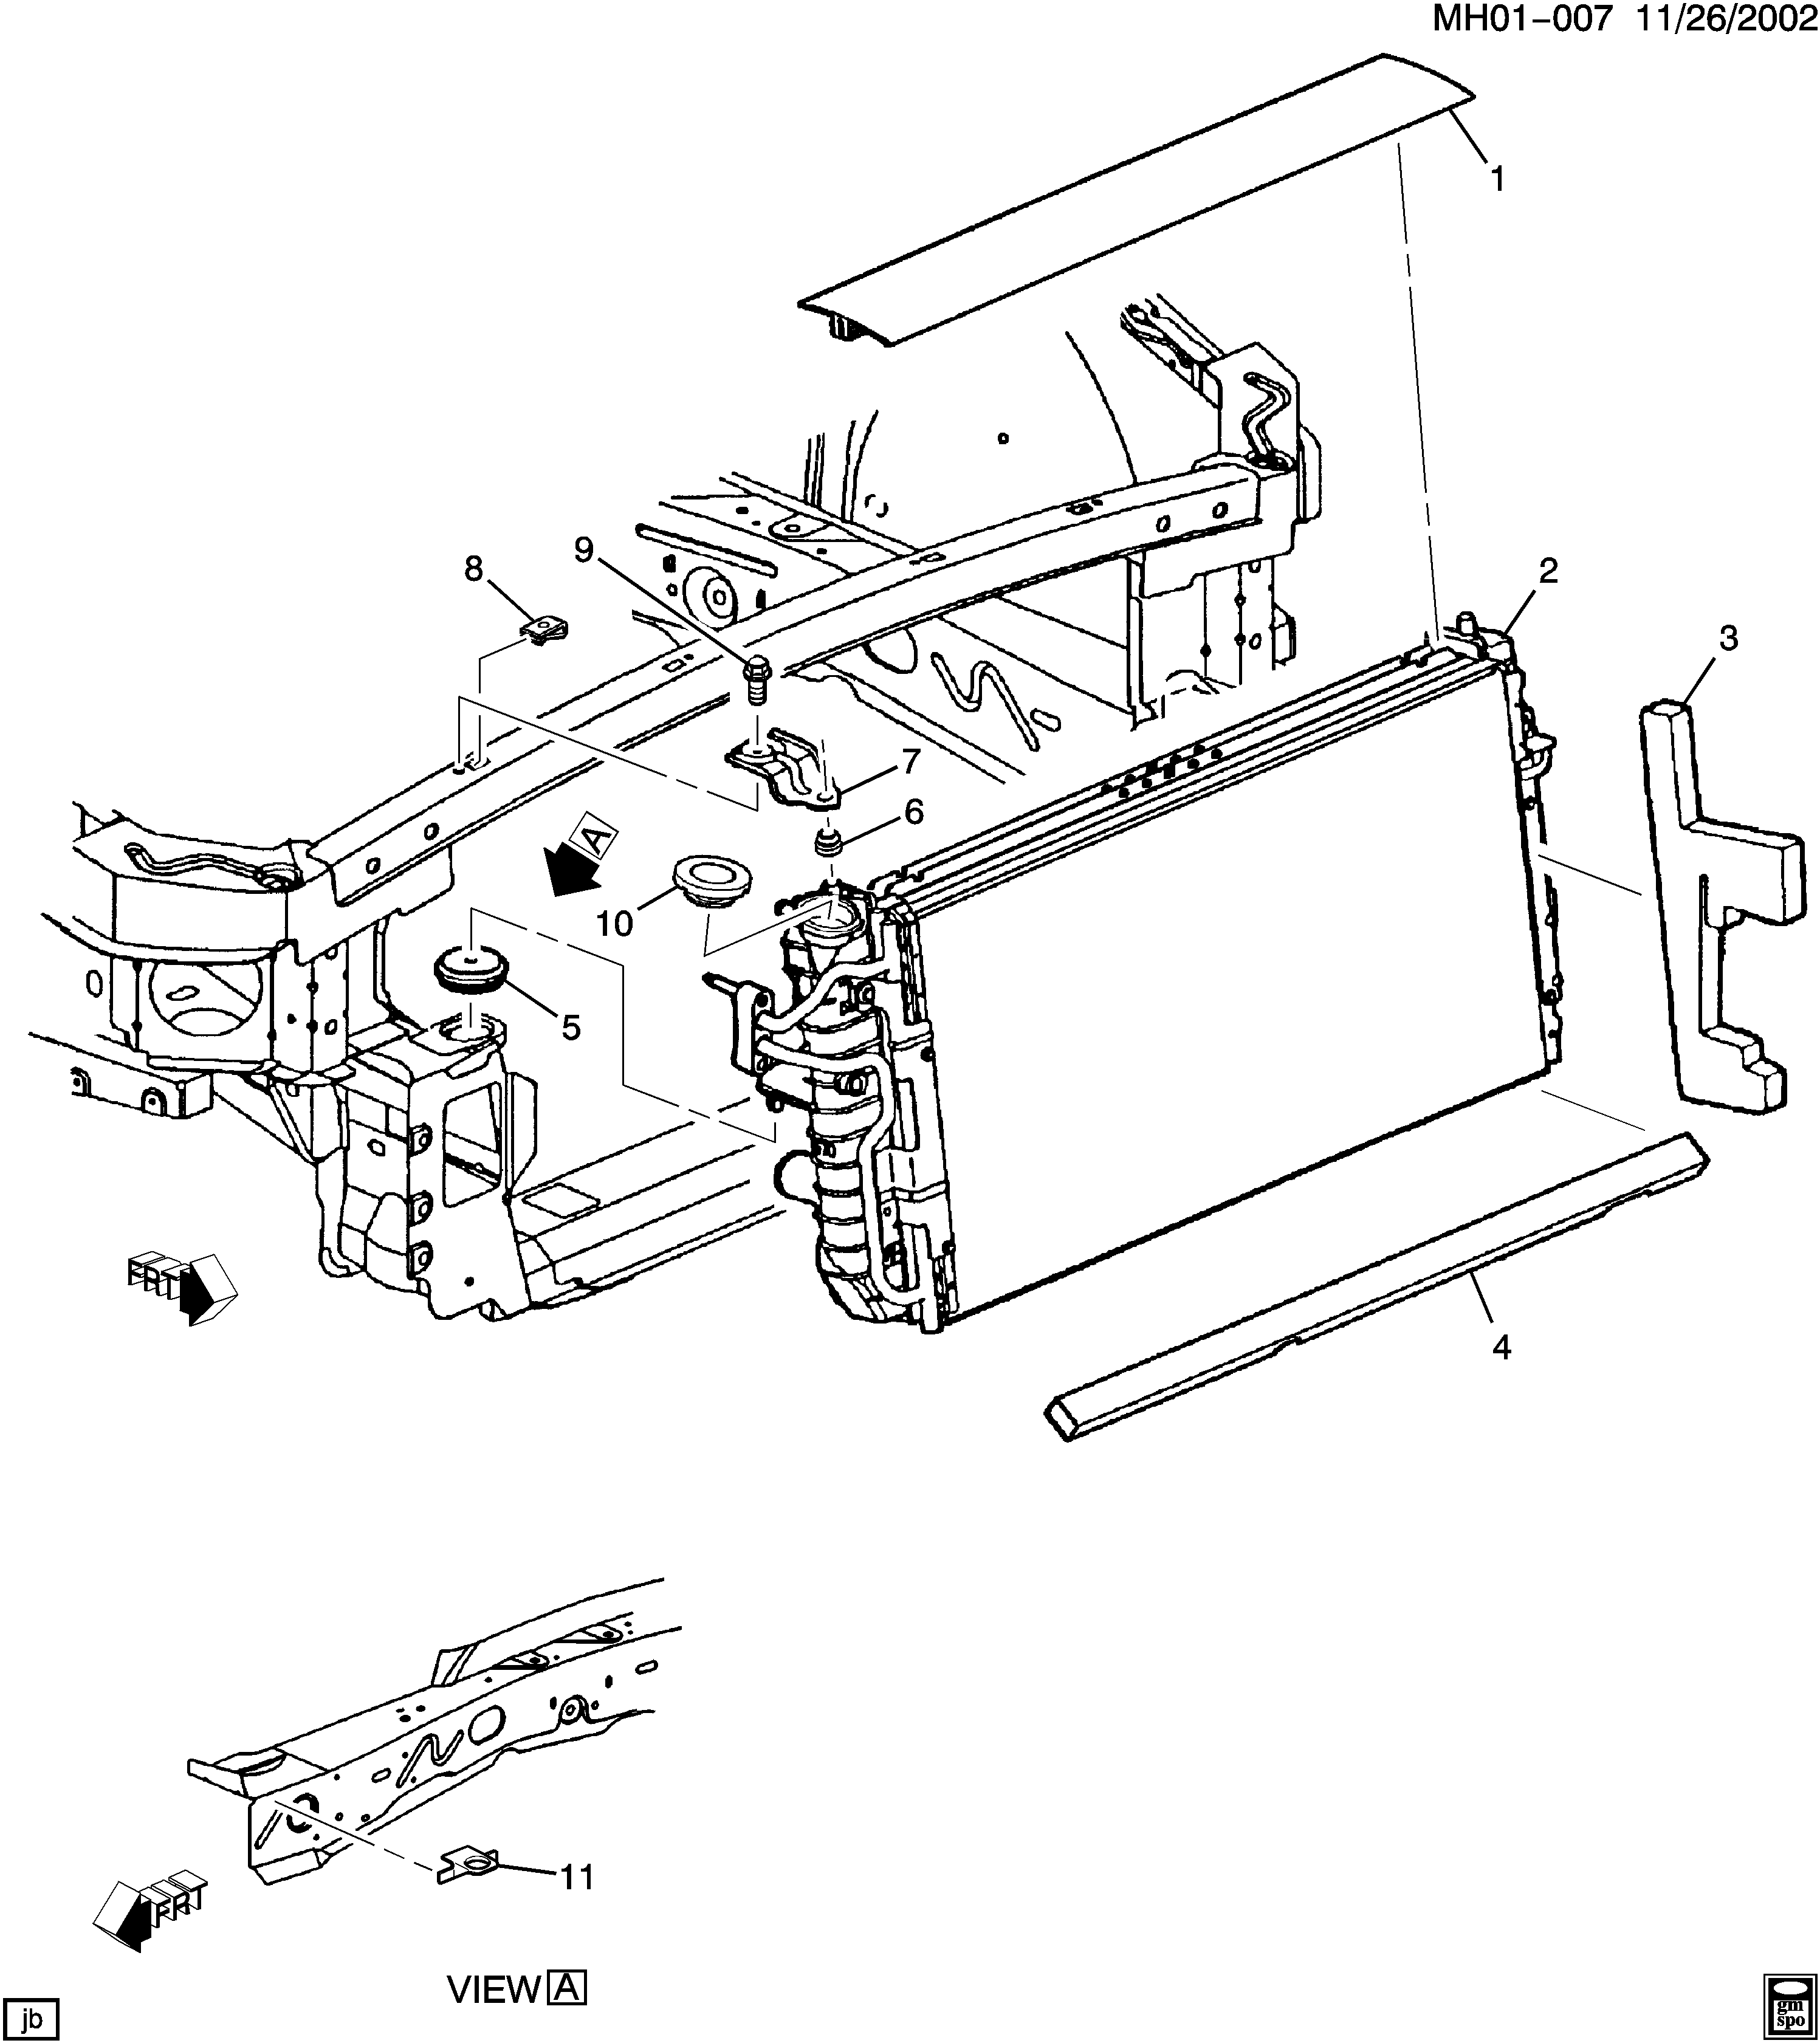 2000-2003 H RADIATOR MOUNTING & RELATED PARTS